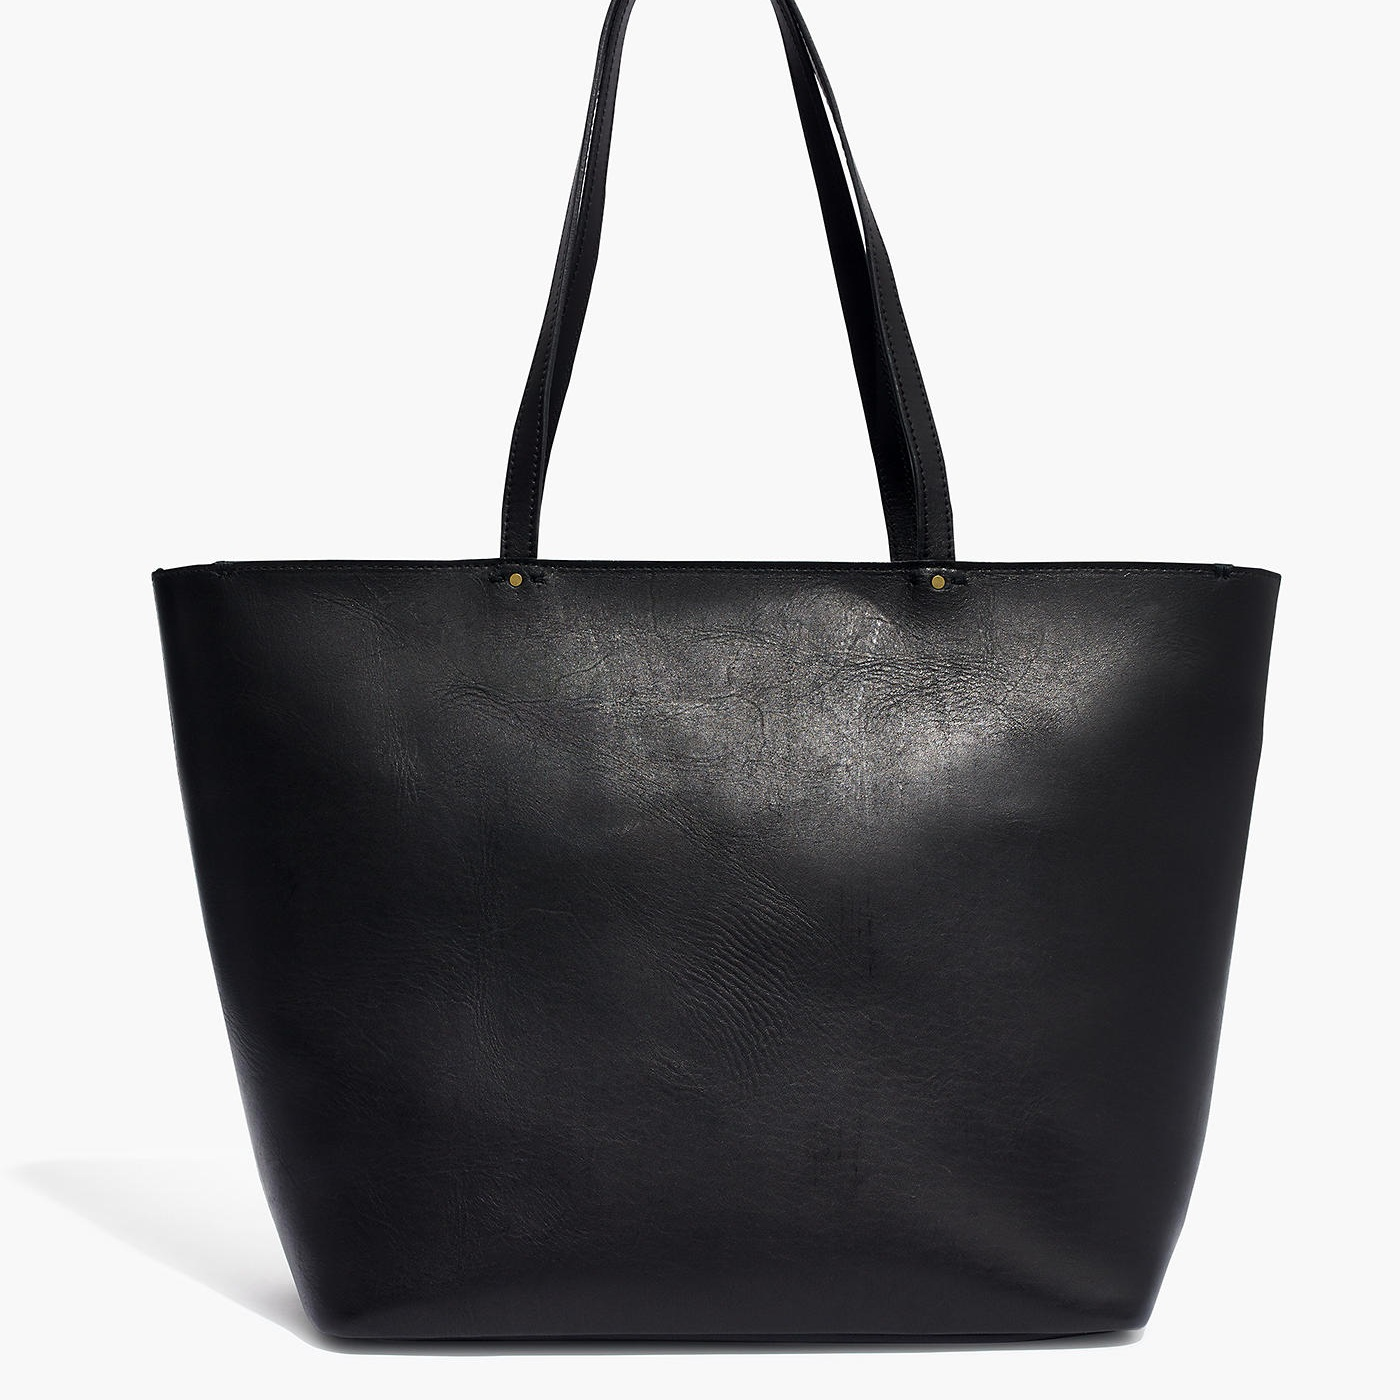 leather tote - Totes are a great bag for everyday errands or traveling.